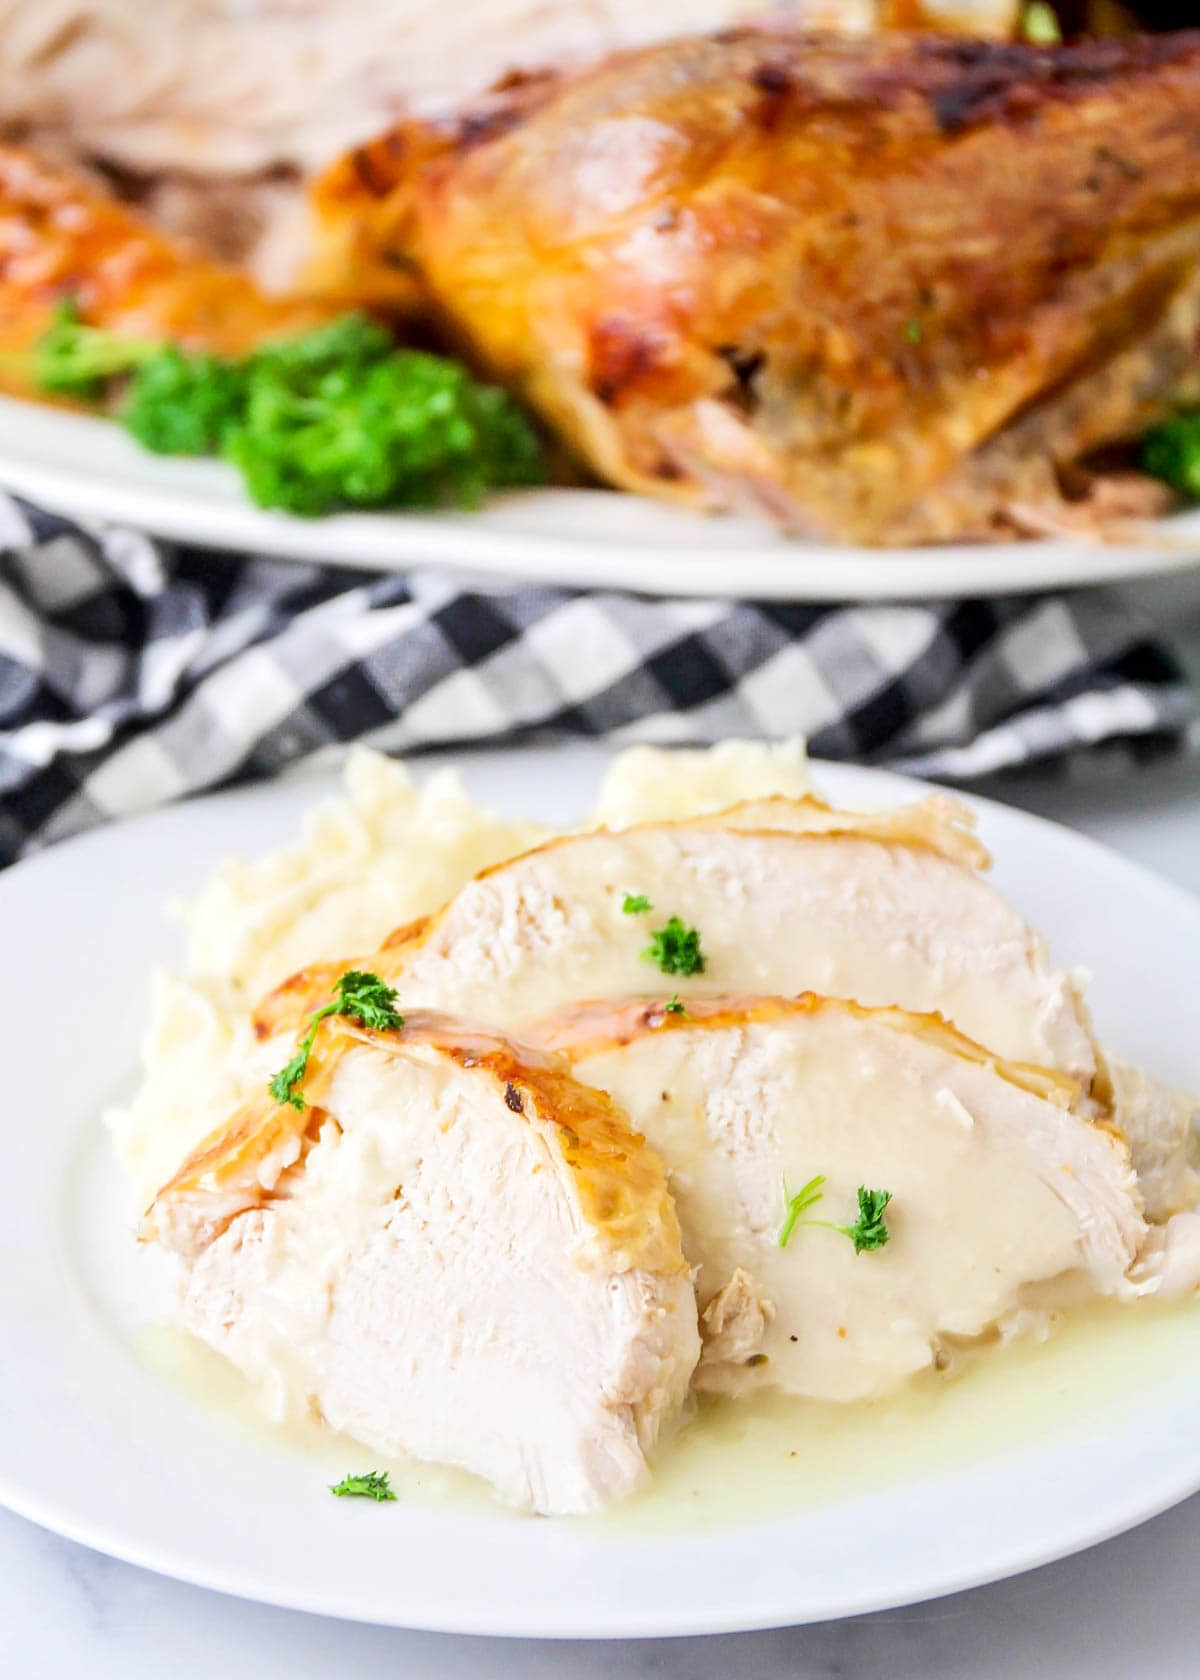 a plate of sliced turkey and mashed potatoes topped with turkey gravy.